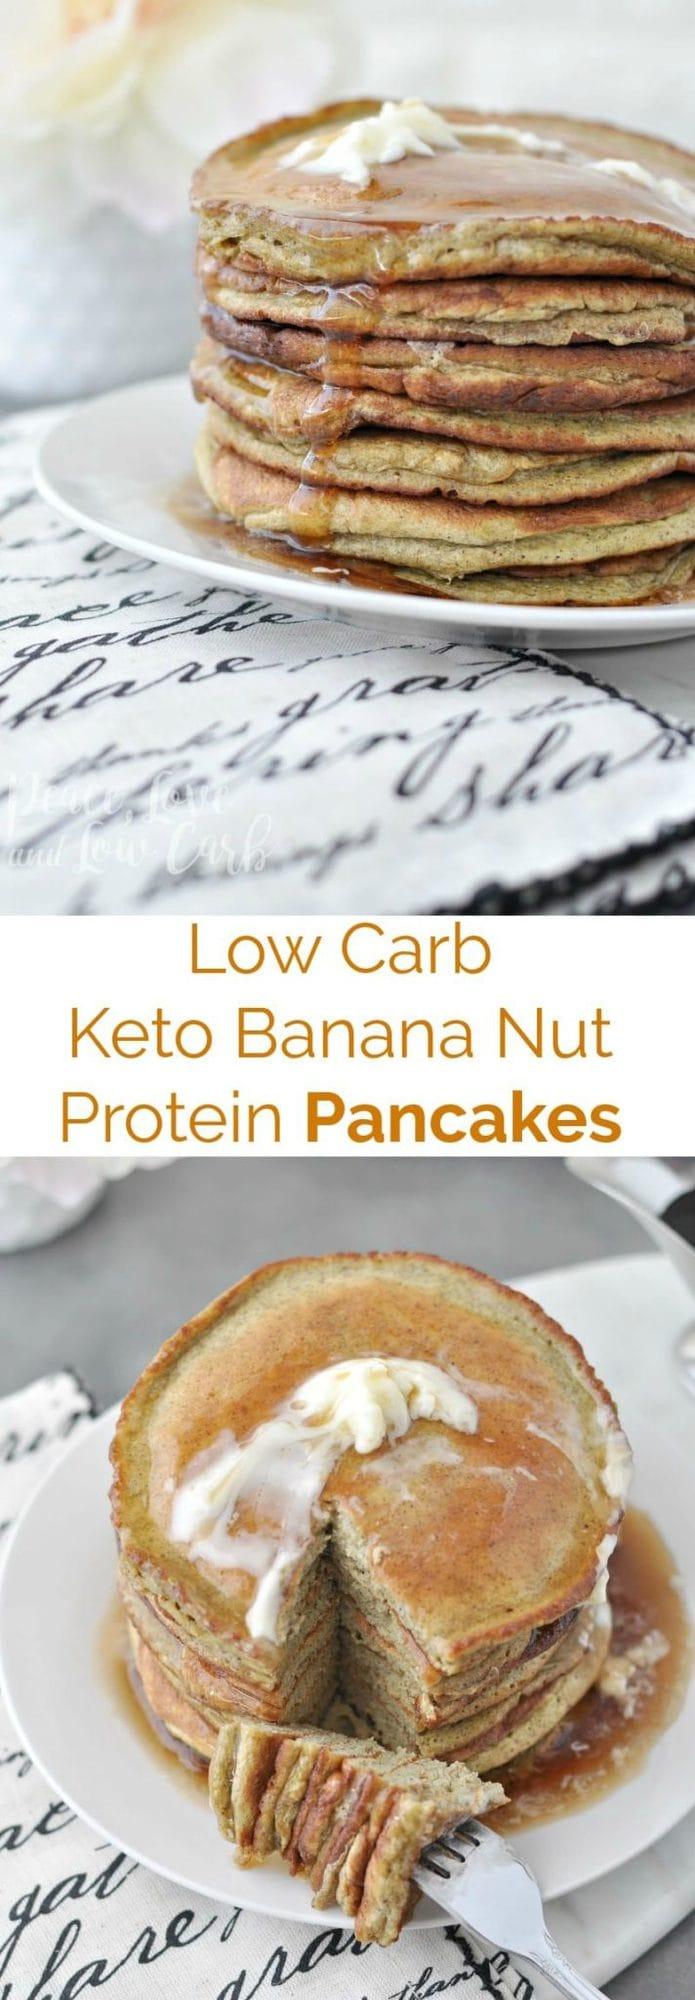 Low Carb Keto Banana Nut Protein Pancakes | Peace Love and Low Carb